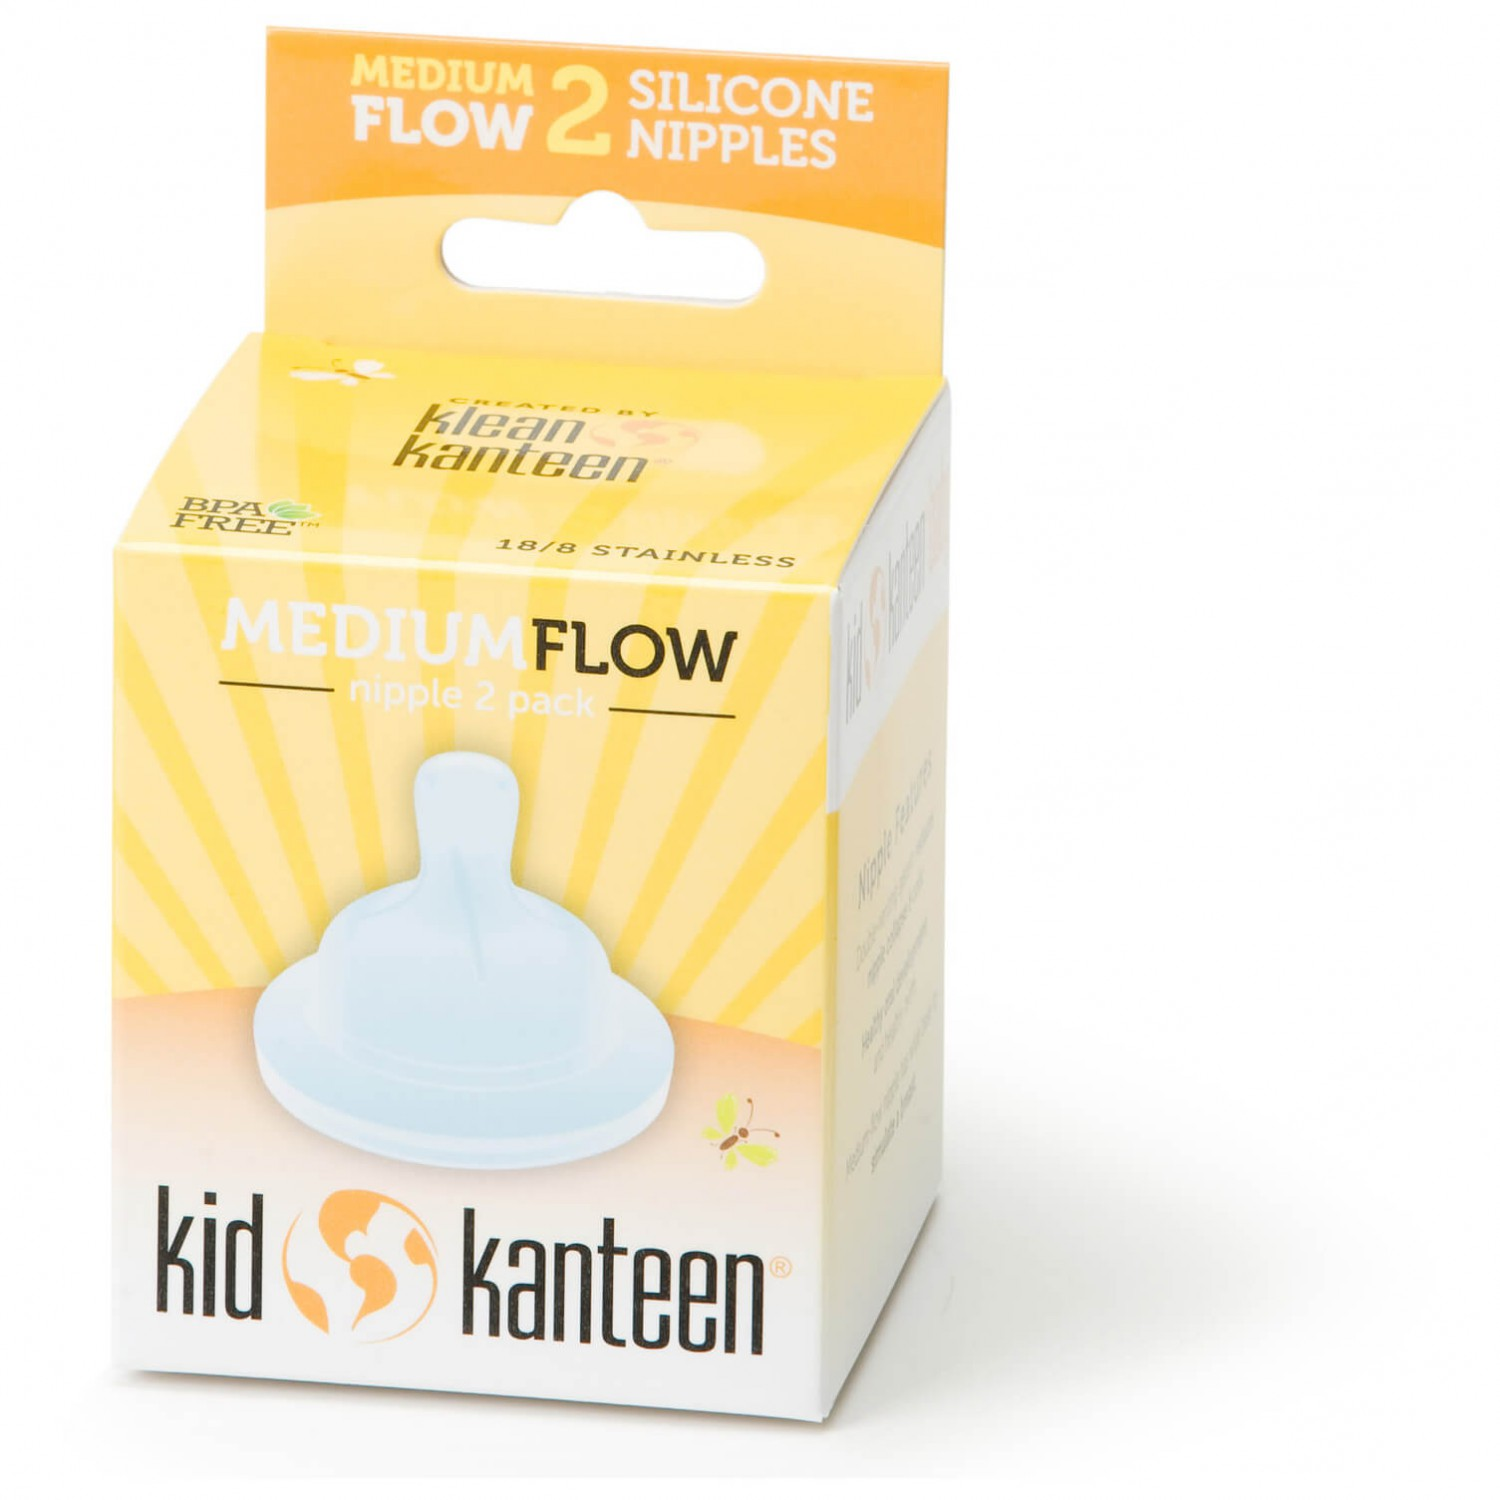 KLEAN KANTEEN BABY SILICONE NIPPLES CLEAR